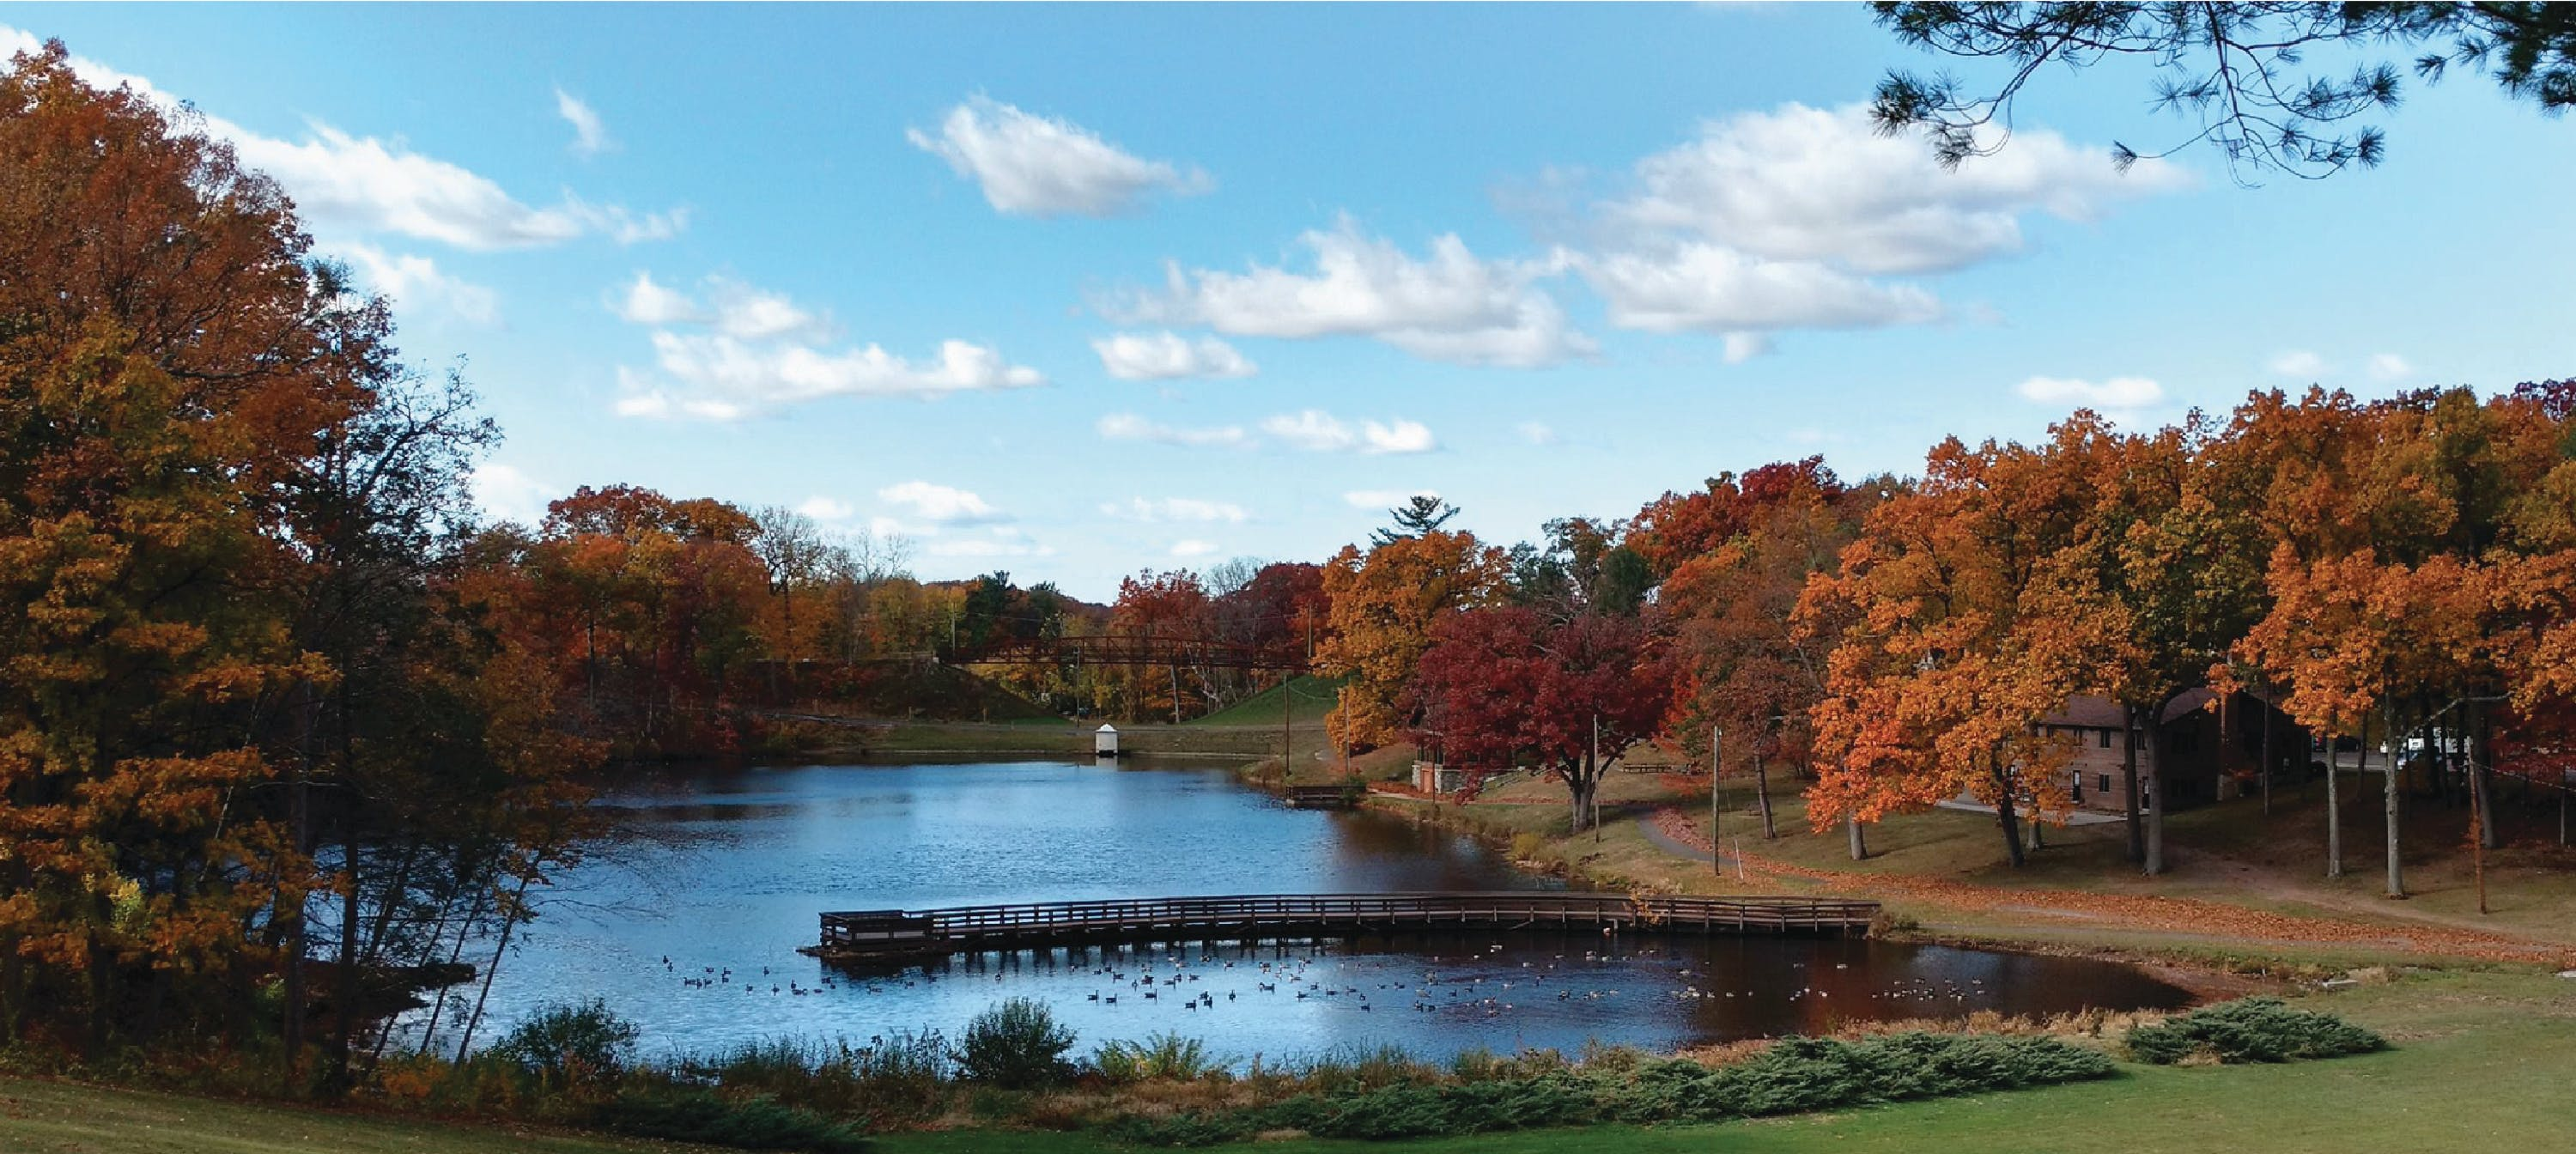 Scenic image of Center Springs Park looking down towards pond. (2016)